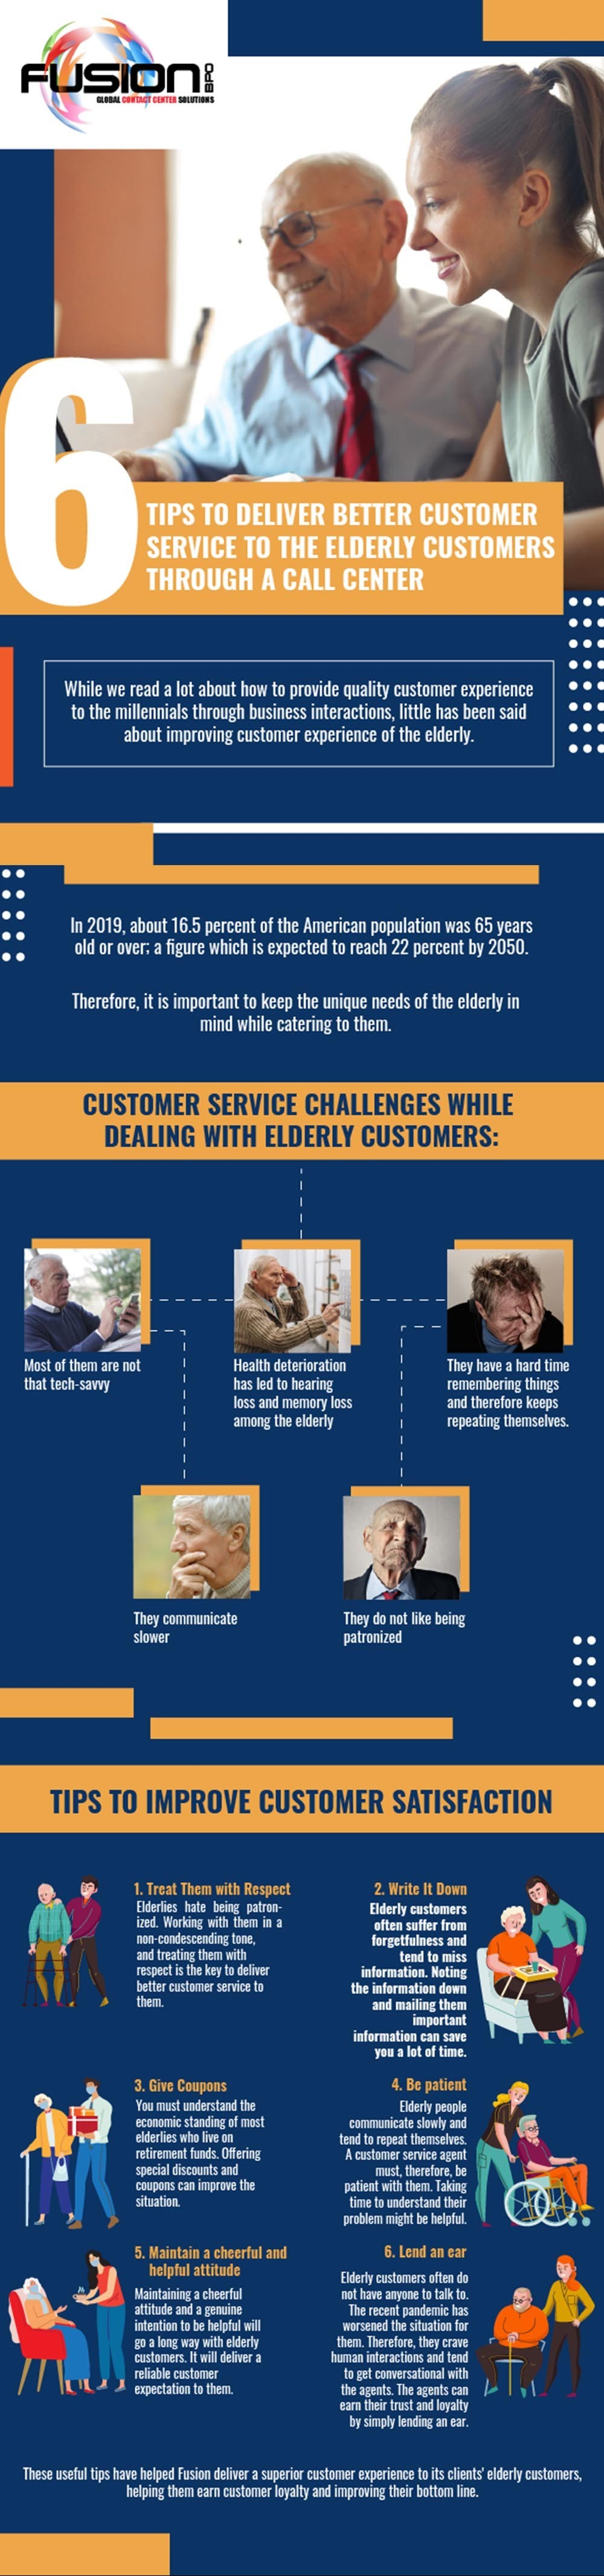 6 Ways To Provide The Elderly Customers With Quality Customer Experience